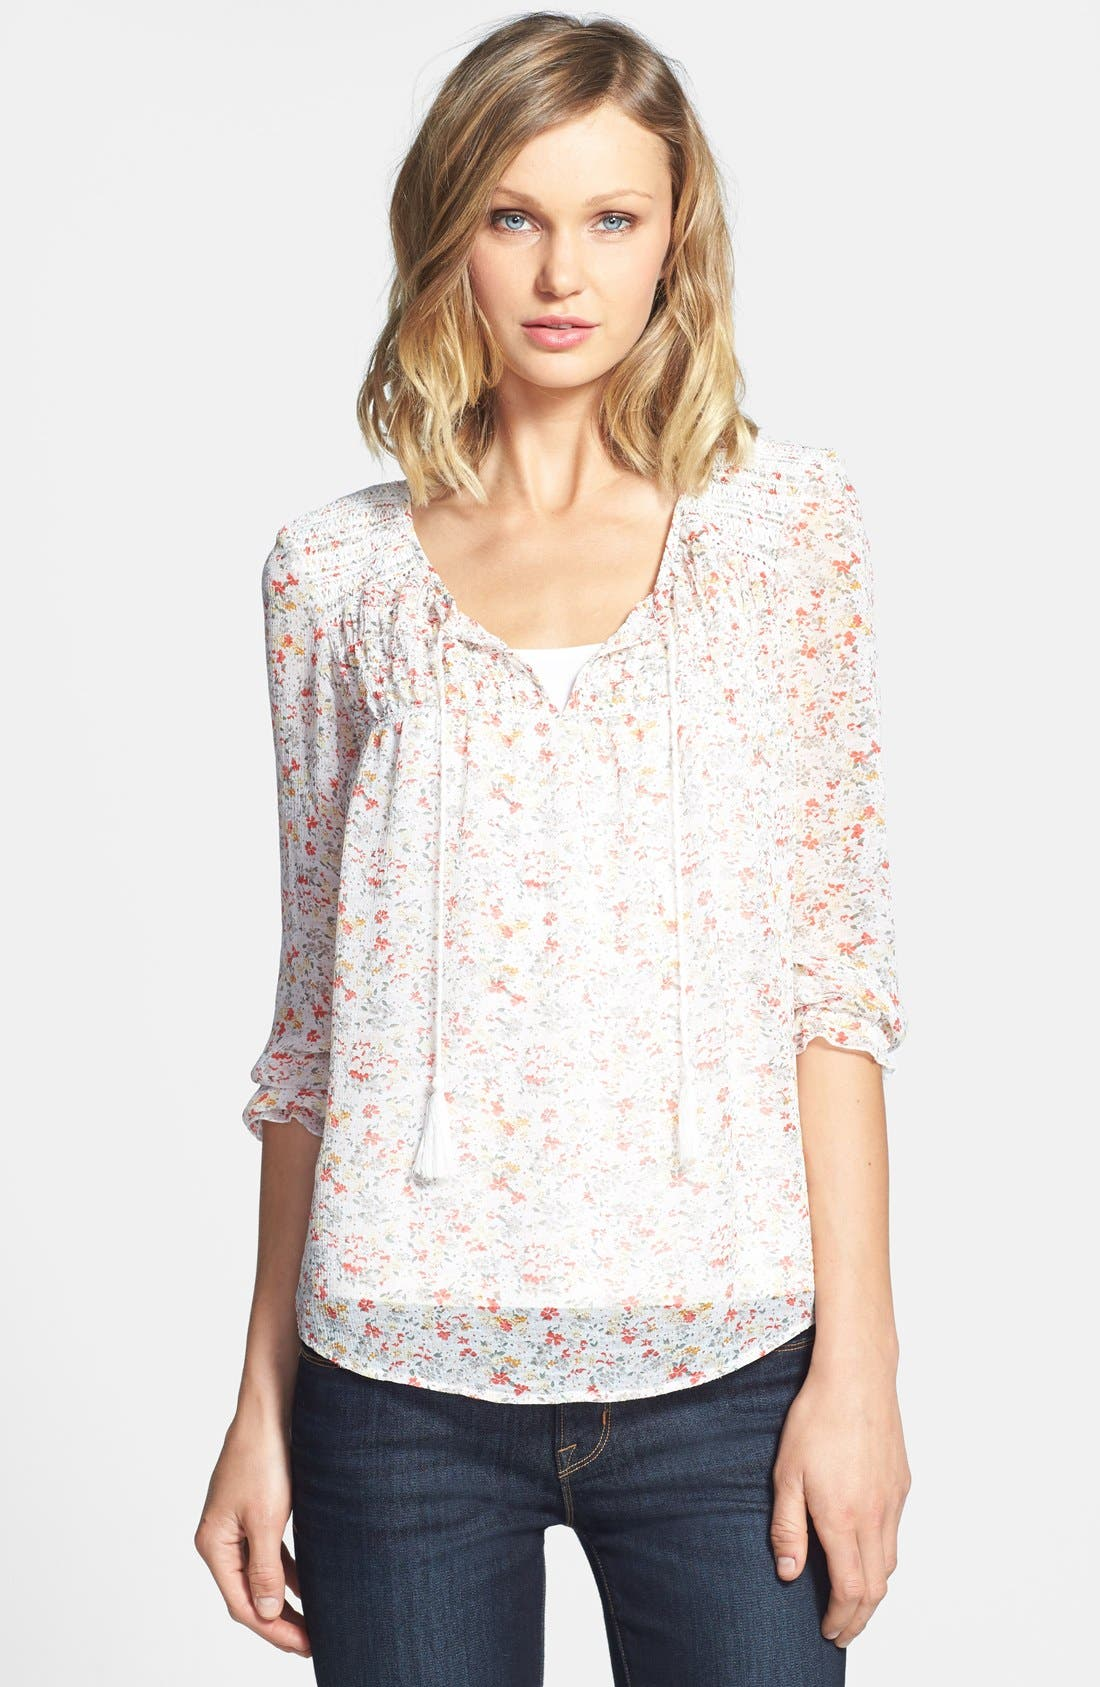 Main Image - Two by Vince Camuto 'Ditsy Floral' Tie Neck Blouse